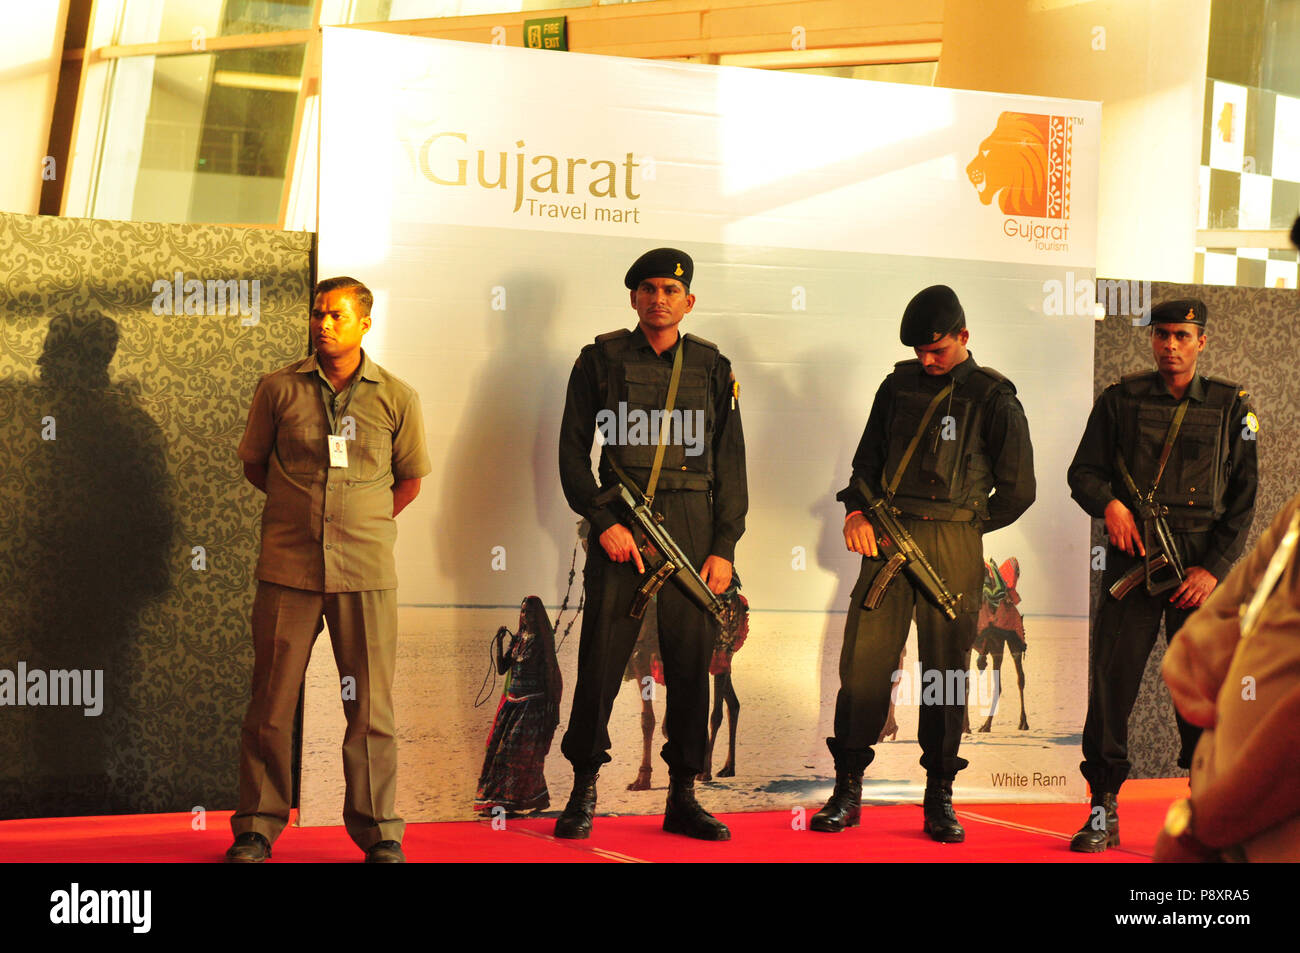 Security for Gujarat's Prime Minister Modi Nahrendi and the other ministers at Gujarat Travel Mart in Ahmedabad - Stock Image